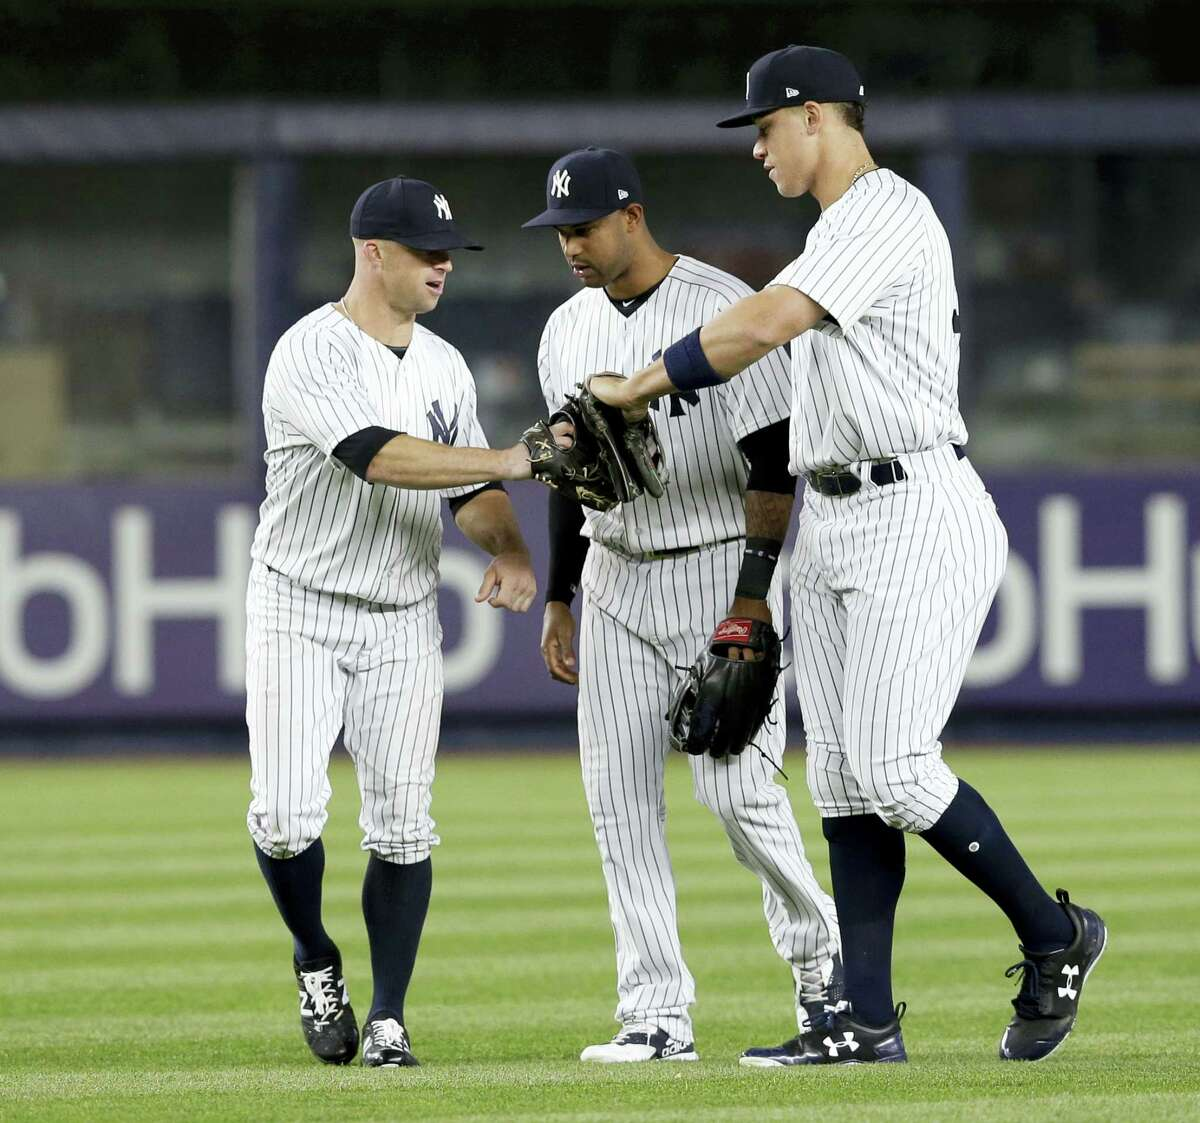 New York Yankees' Brett Gardner, left, Jacoby Ellsbury, center, and Aaron Judge celebrate in the outfield after the baseball game against the Chicago White Sox at Yankee Stadium, Wednesday, April 19, 2017, in New York. The Yankees defeated the White Sox 9-1. (AP Photo/Seth Wenig)